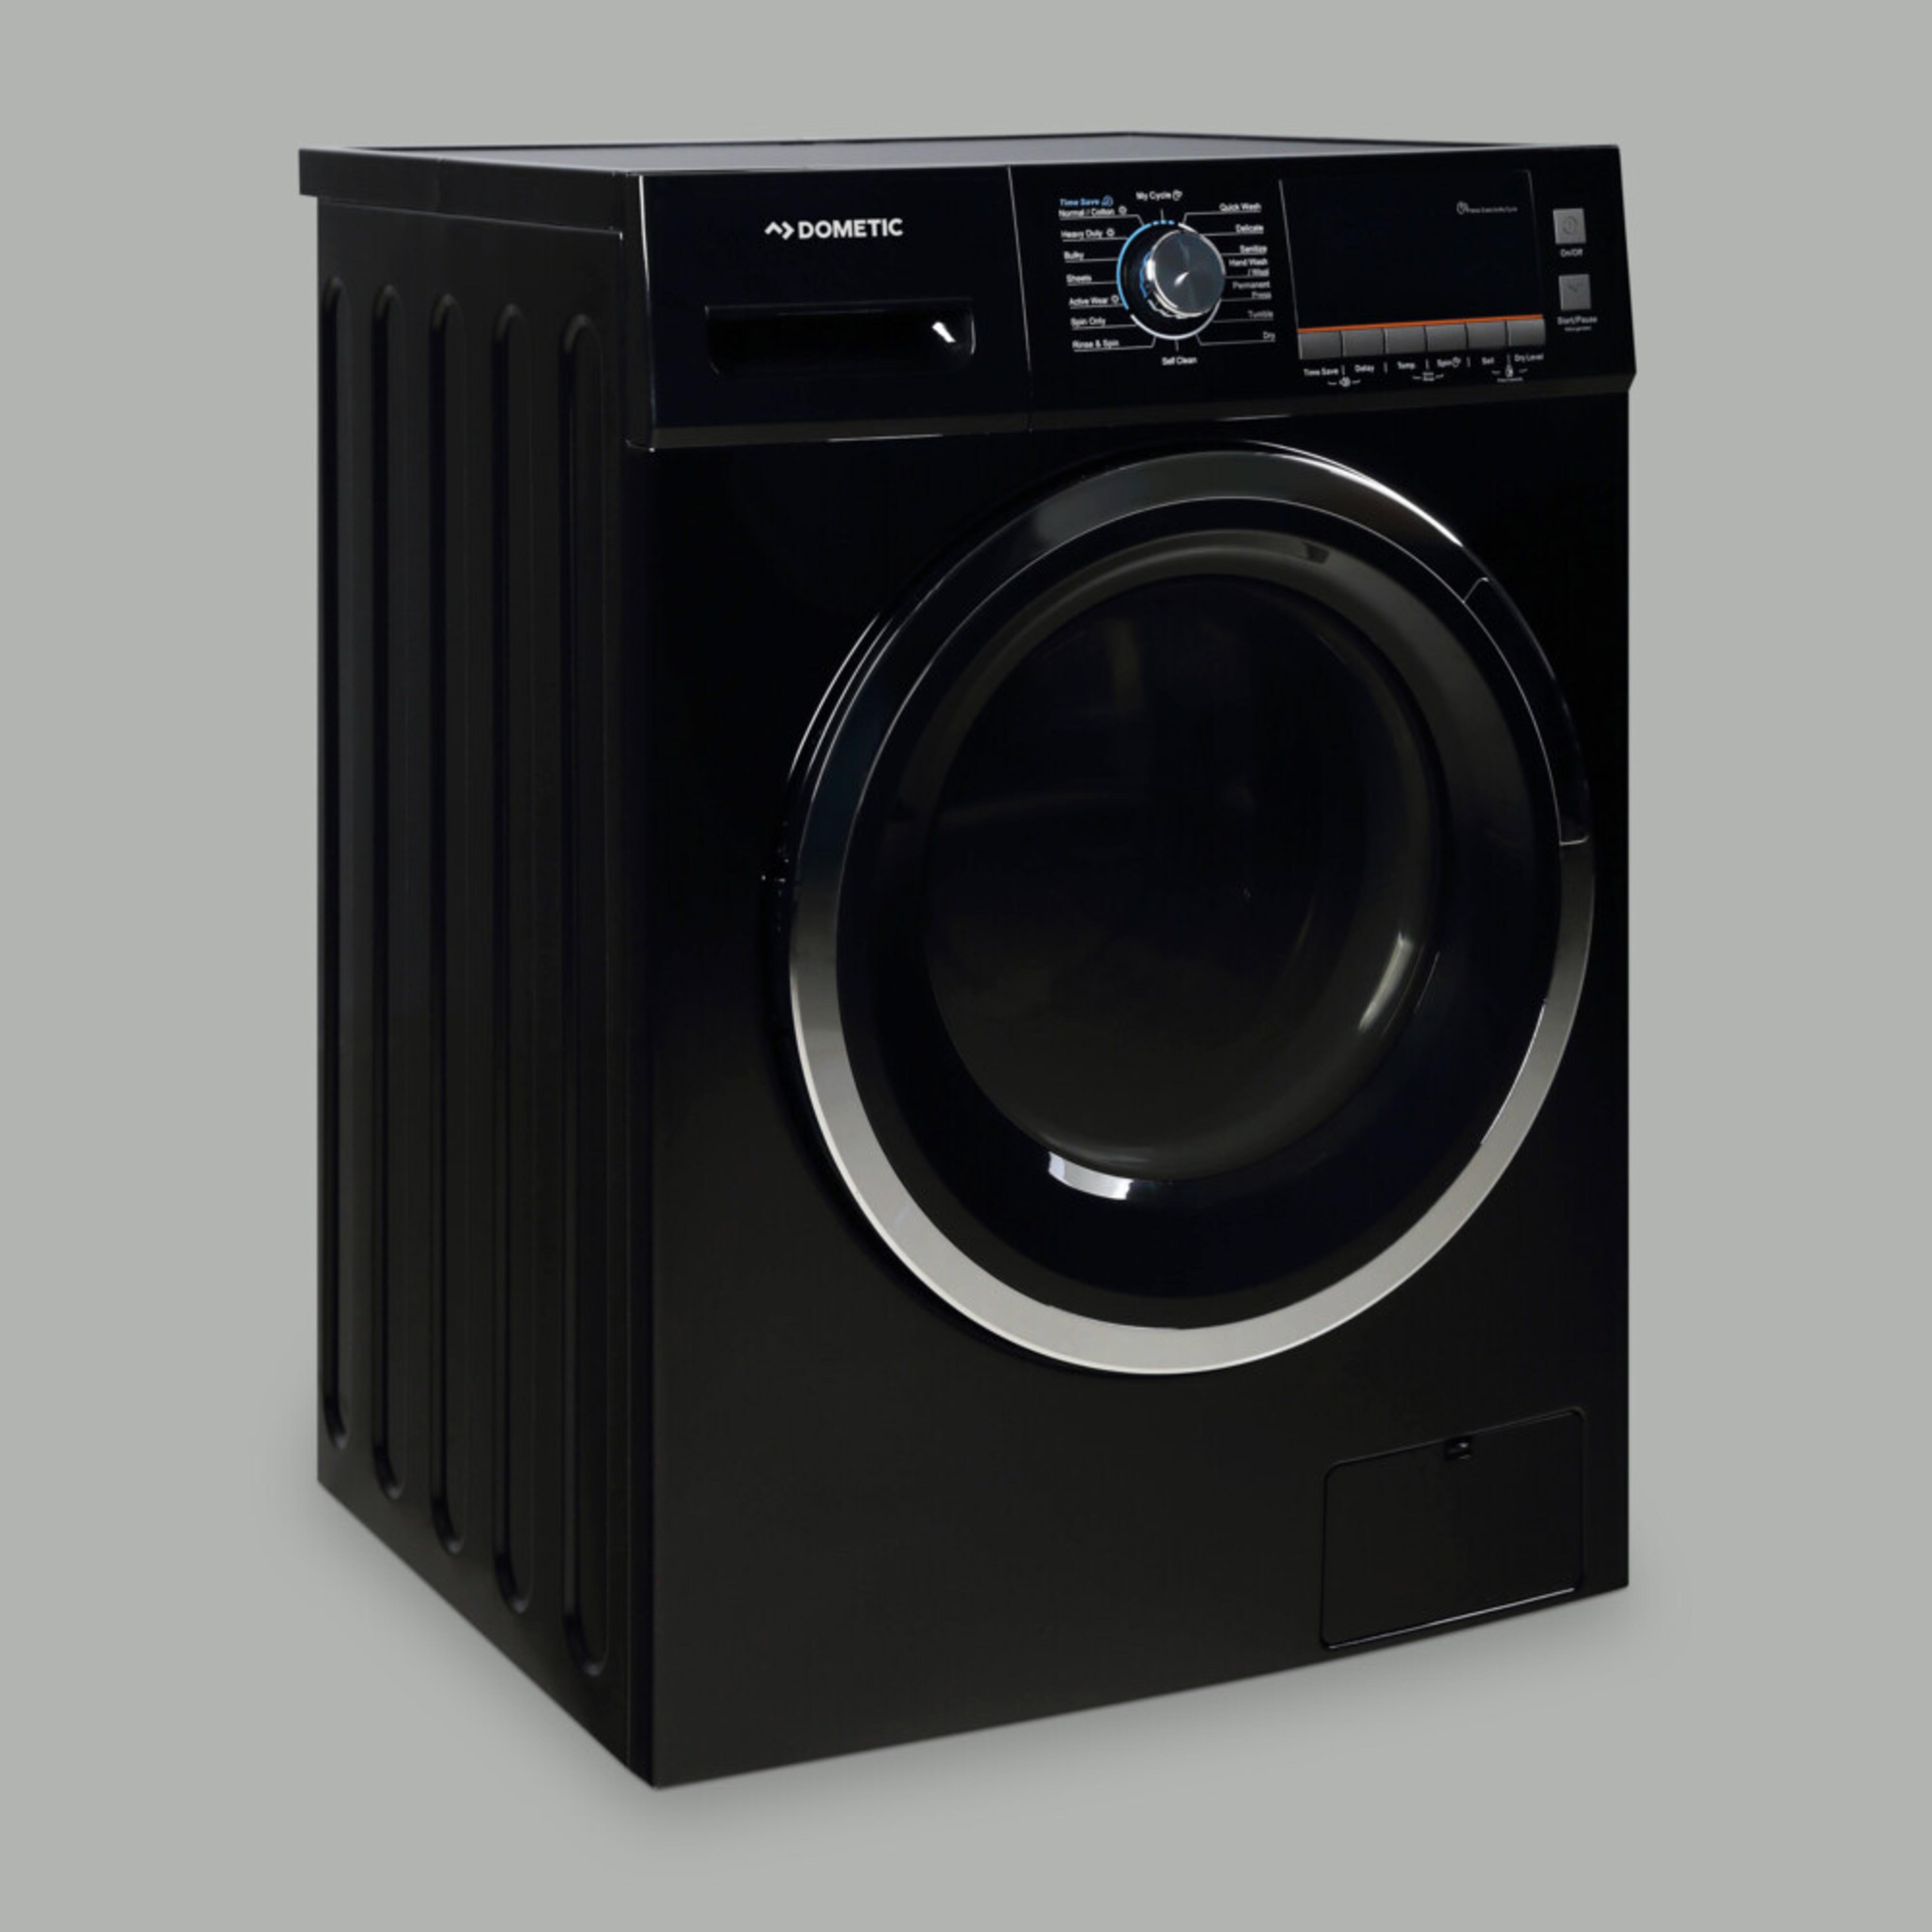 Dometic Washer Dryer Combo